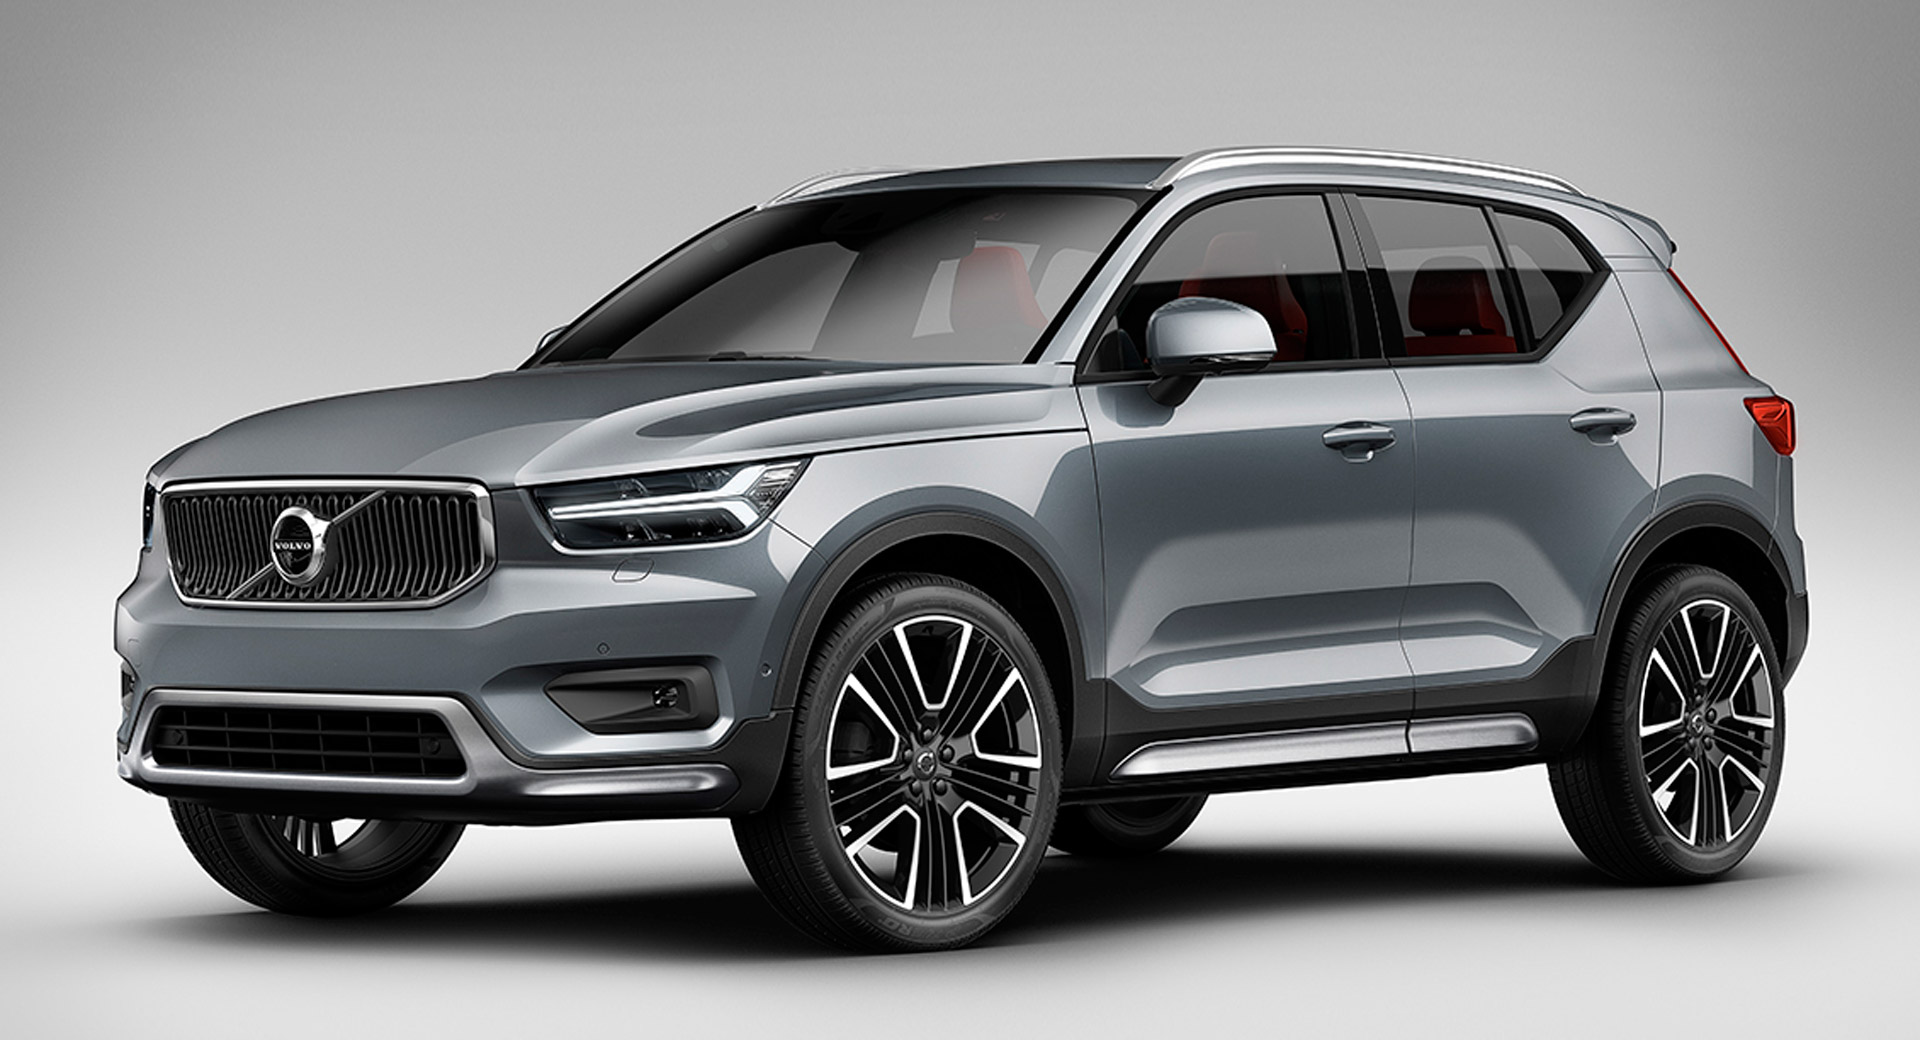 Volvo XC40 Gets Sportier With New Exterior Styling Kit | Carscoops